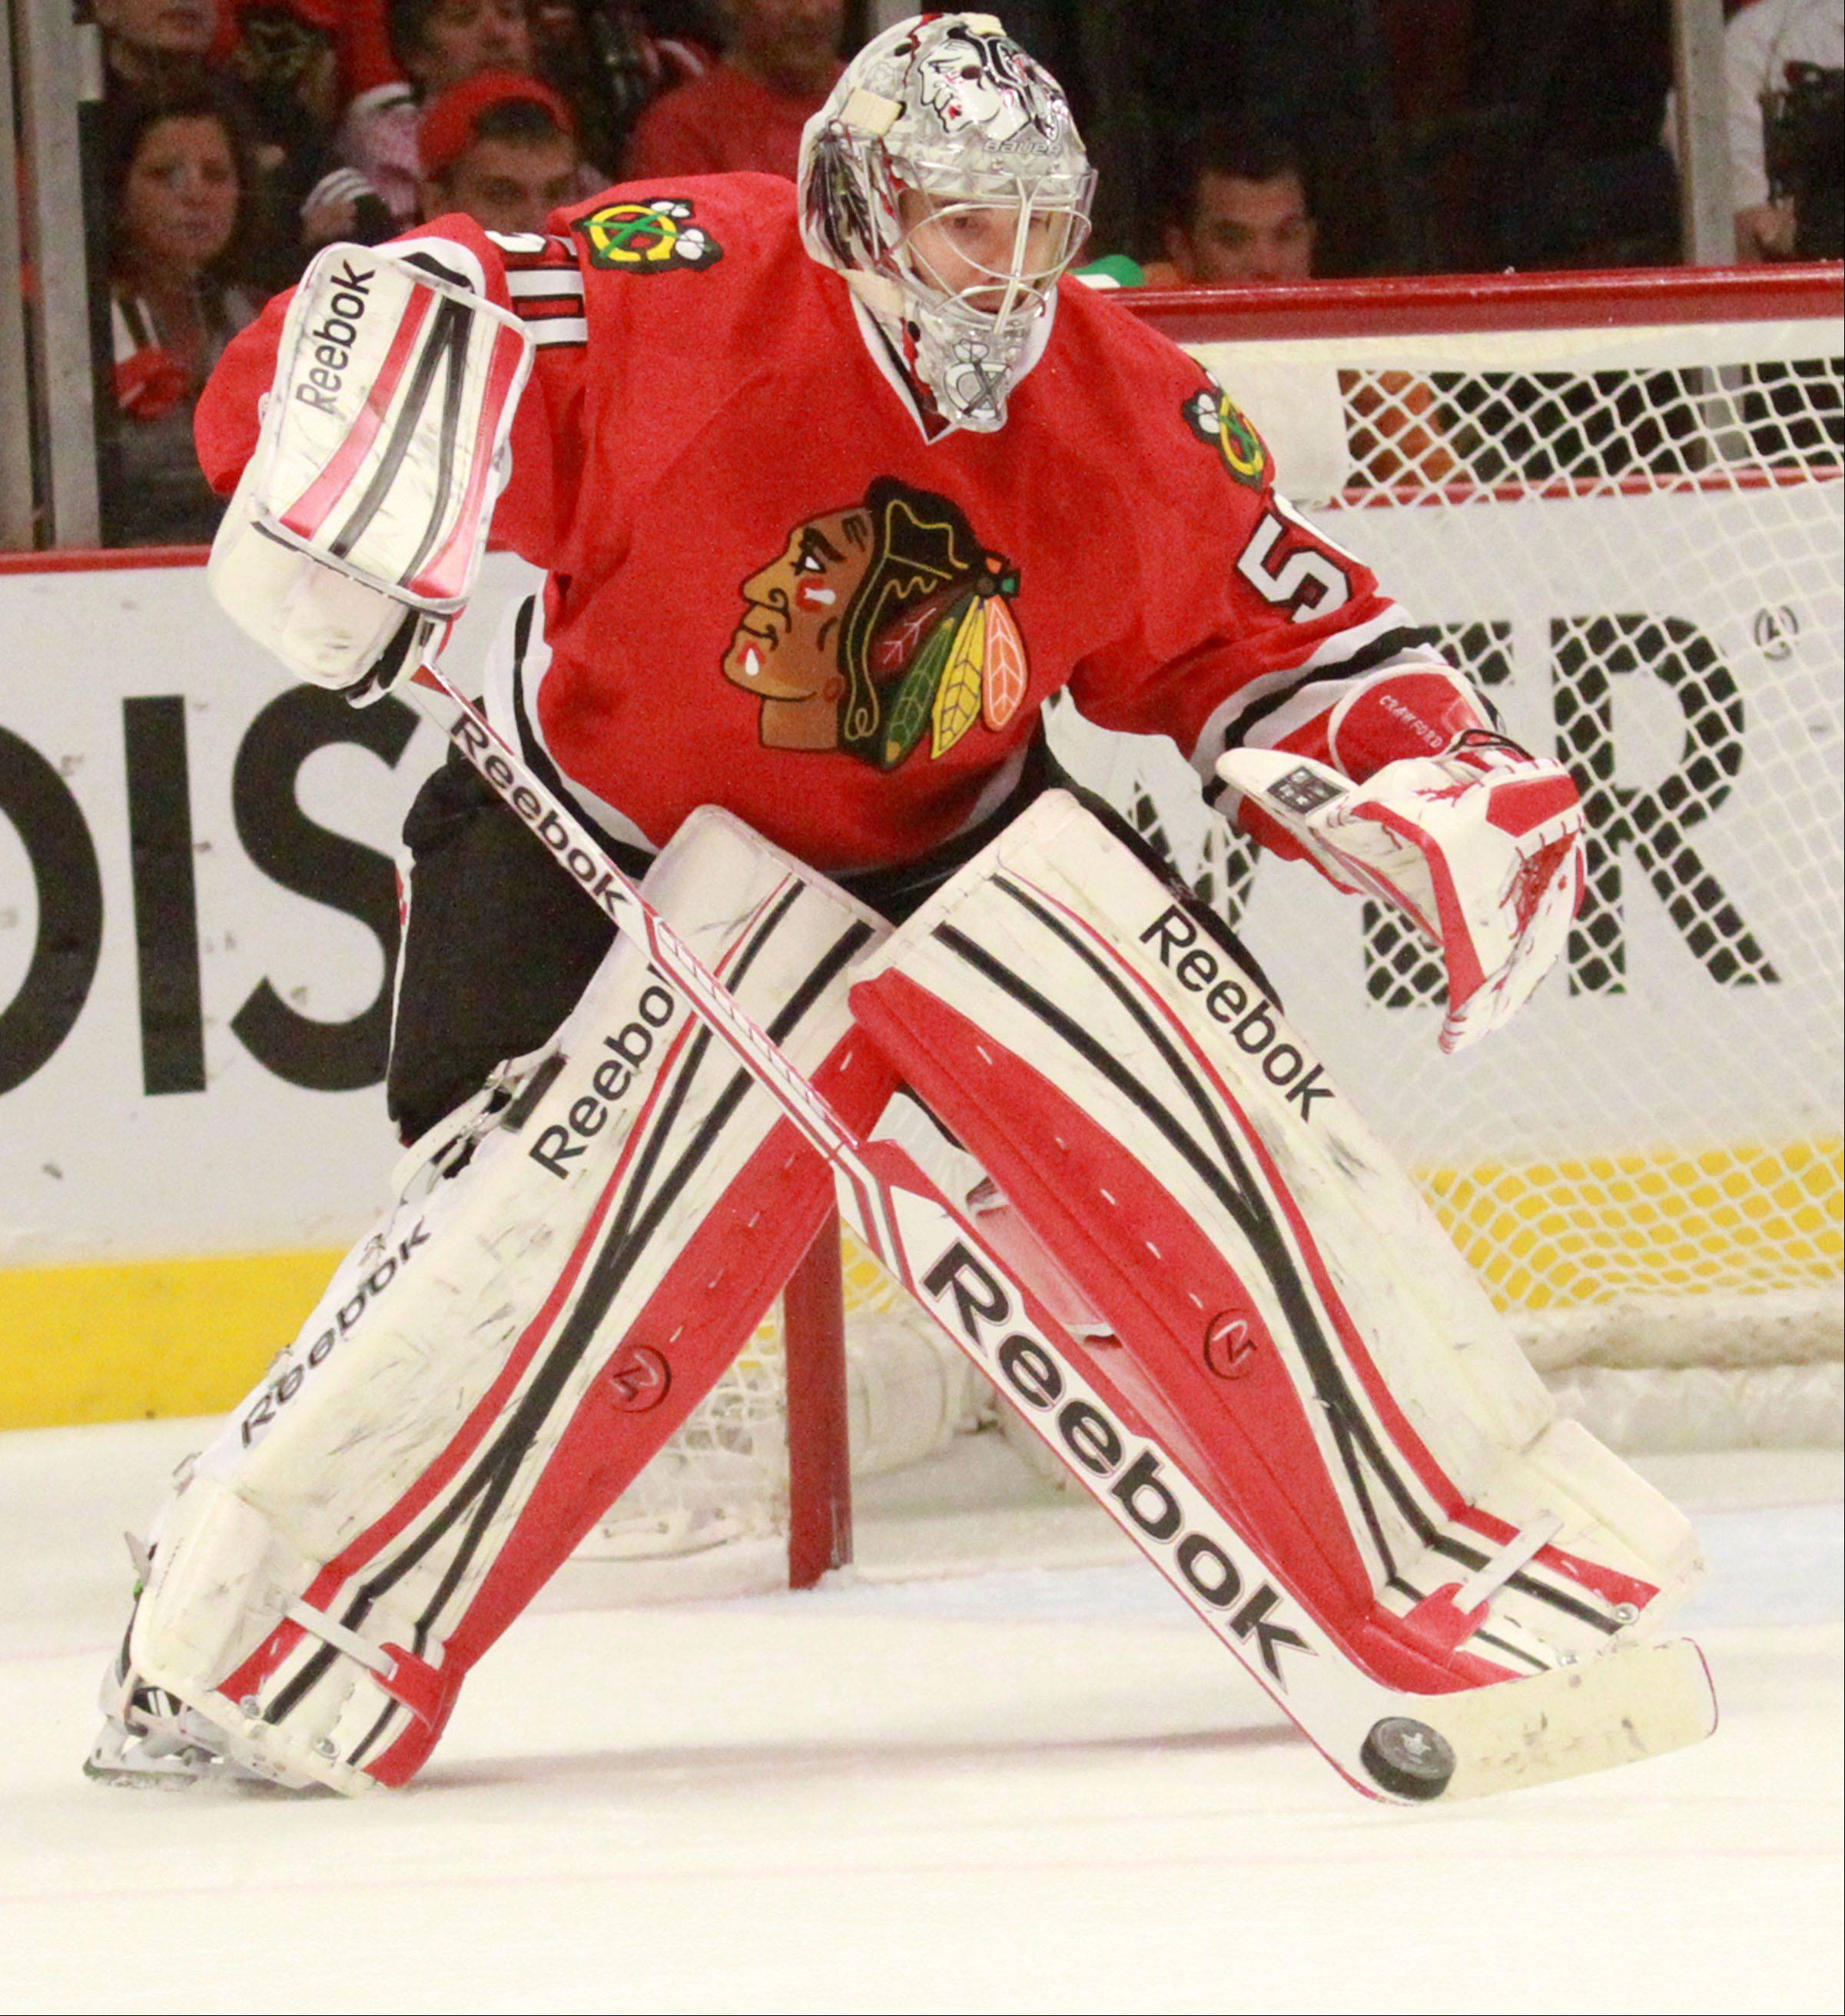 Chicago Blackhawks goalie Corey Crawford blocks a shot.